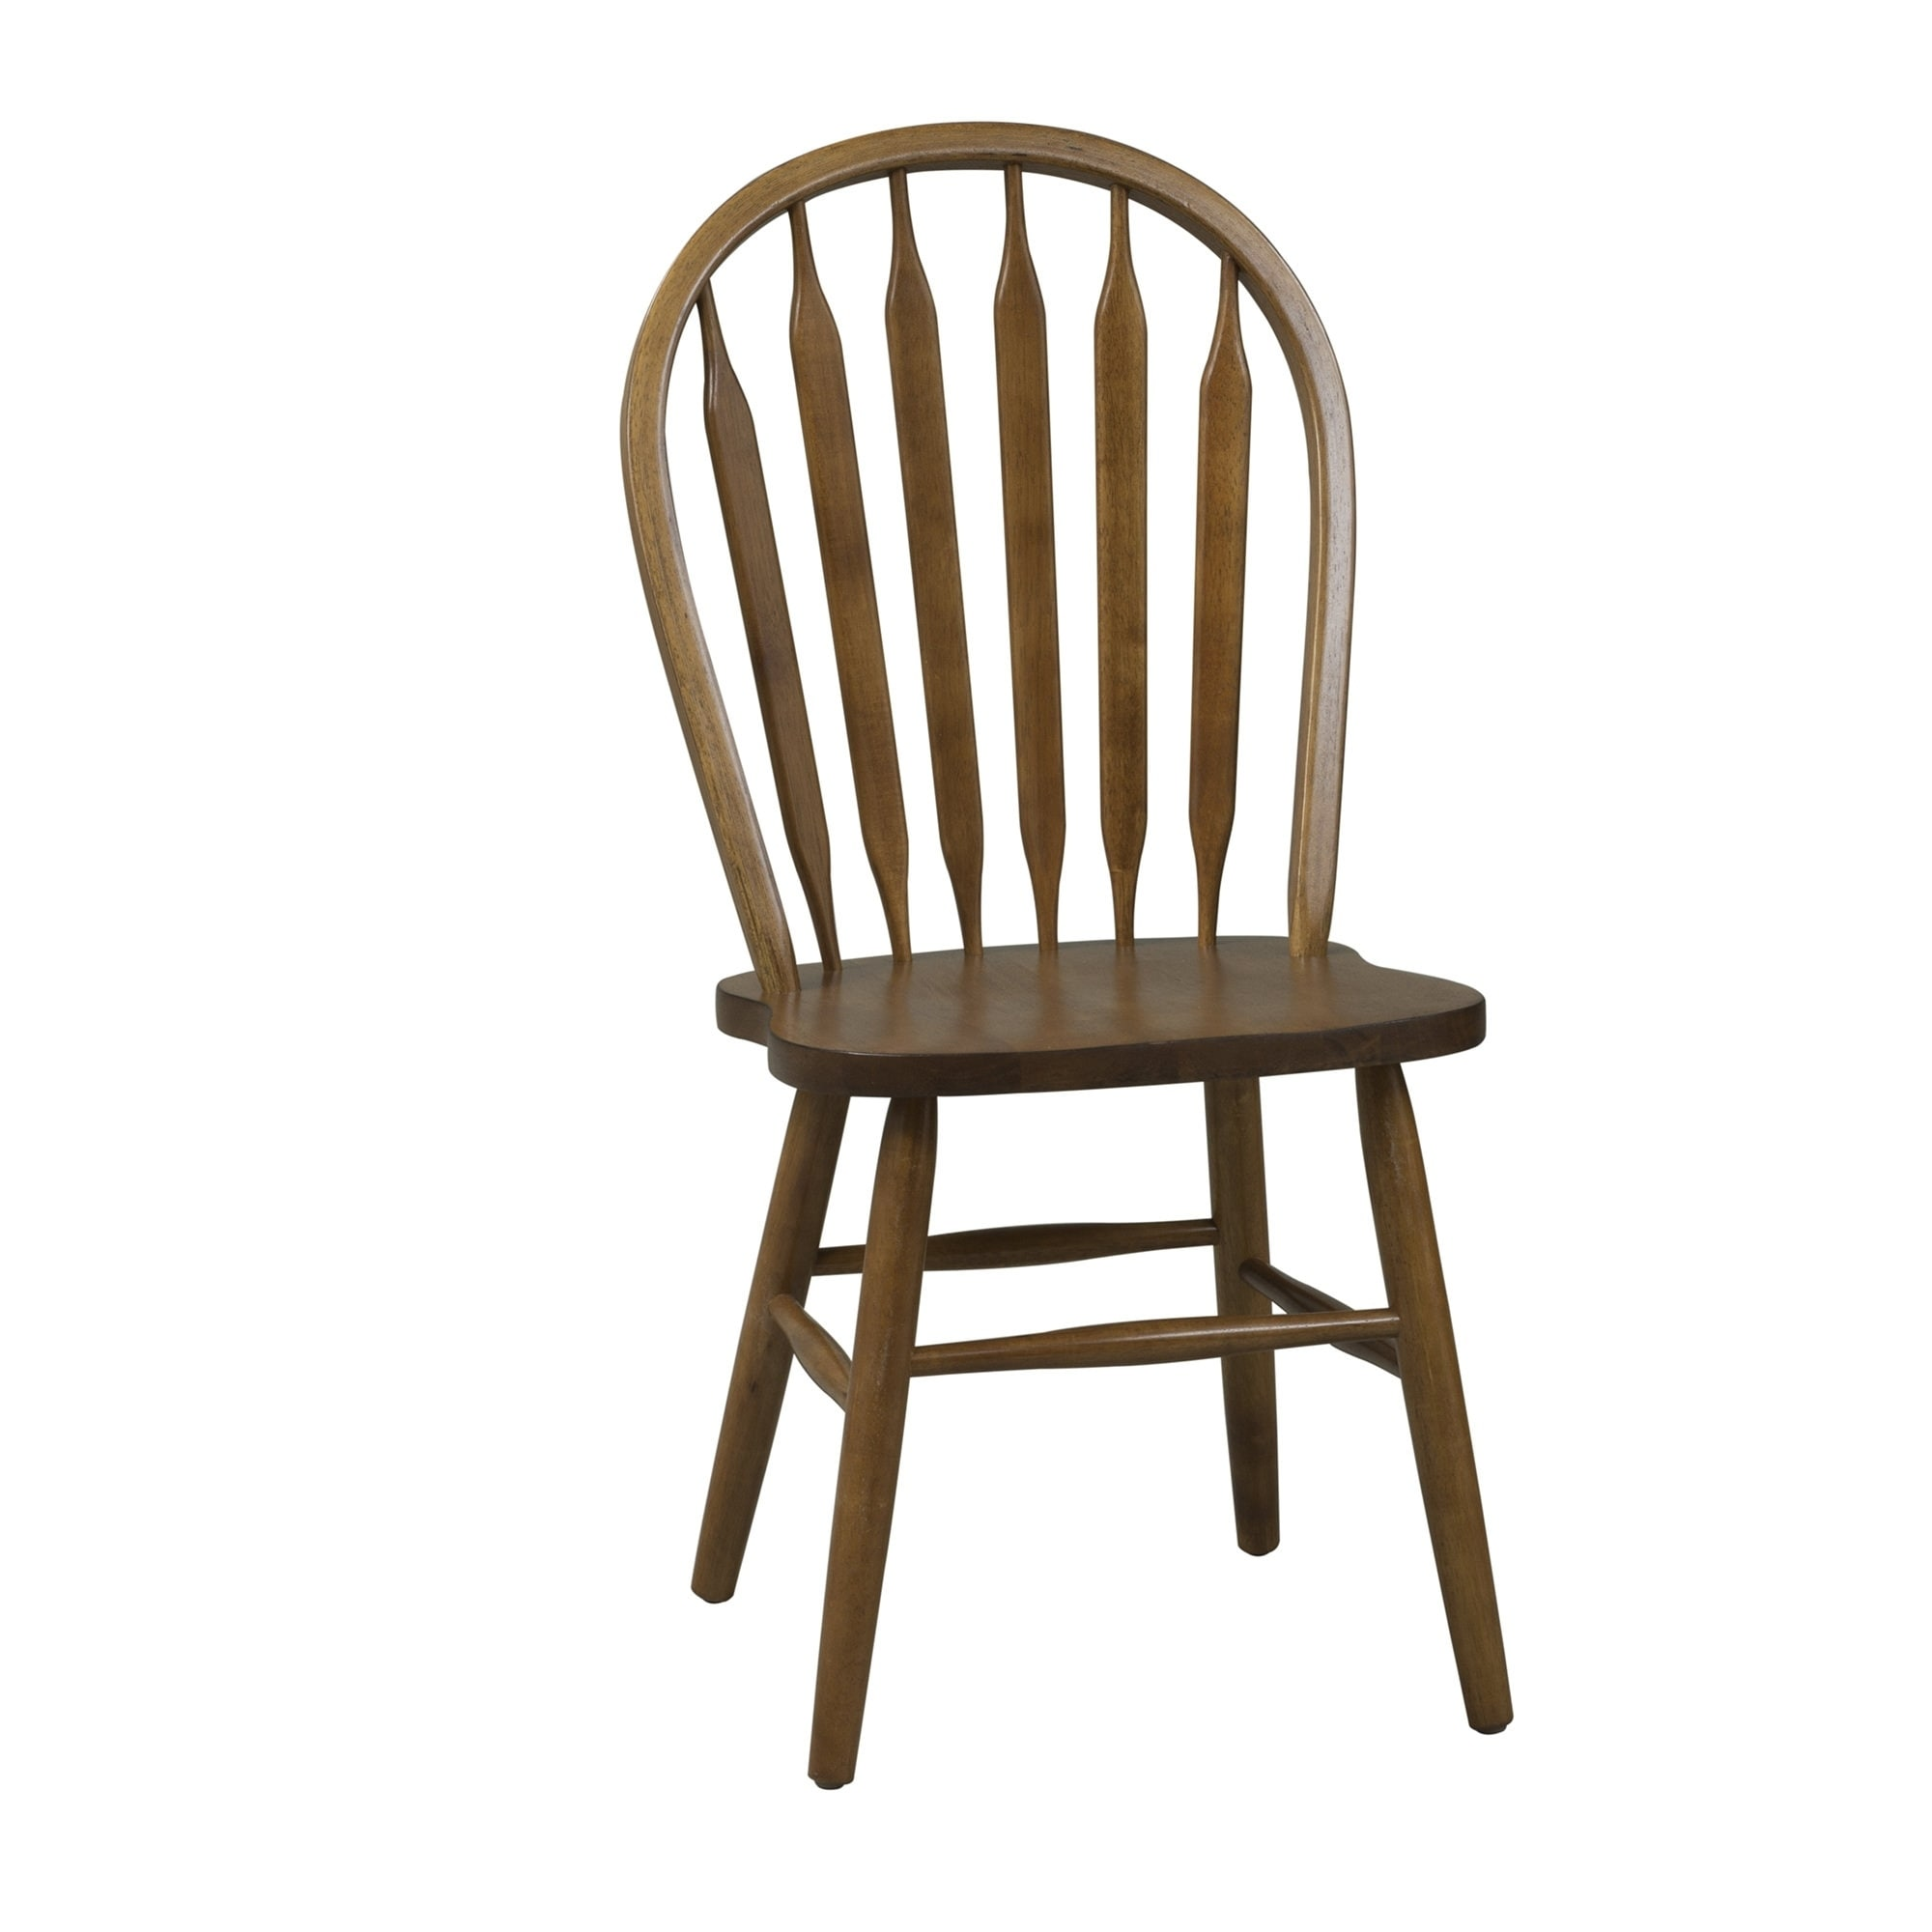 Copper Grove Buckhill Traditional Oak Arrowback Dining Chair